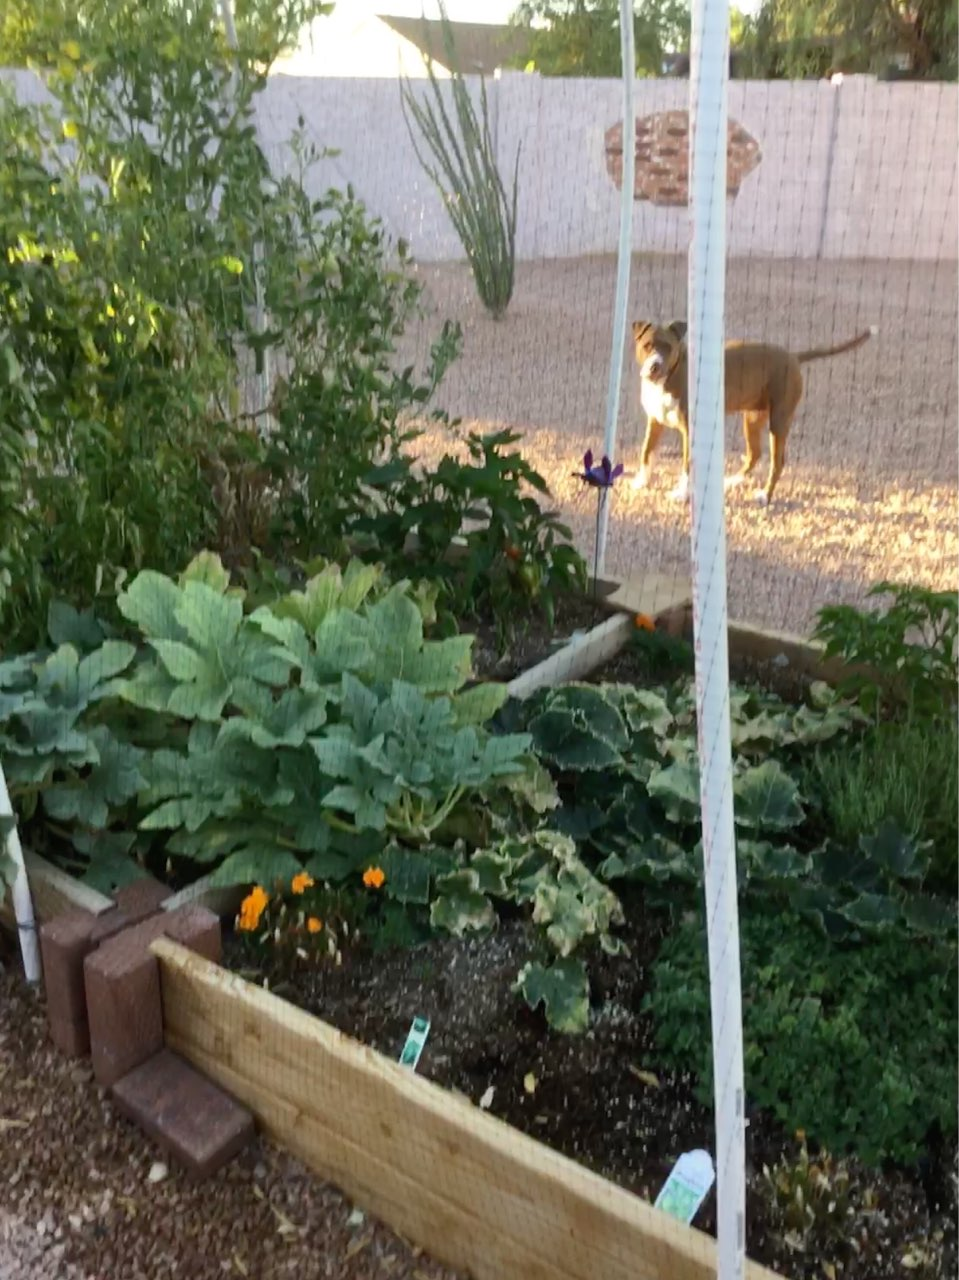 ️I Havenu0027t Posted A Pic Of My Raised Garden In Some Time So Here Is A Shot  Of It With My Sophie. The Garden Has Been ...